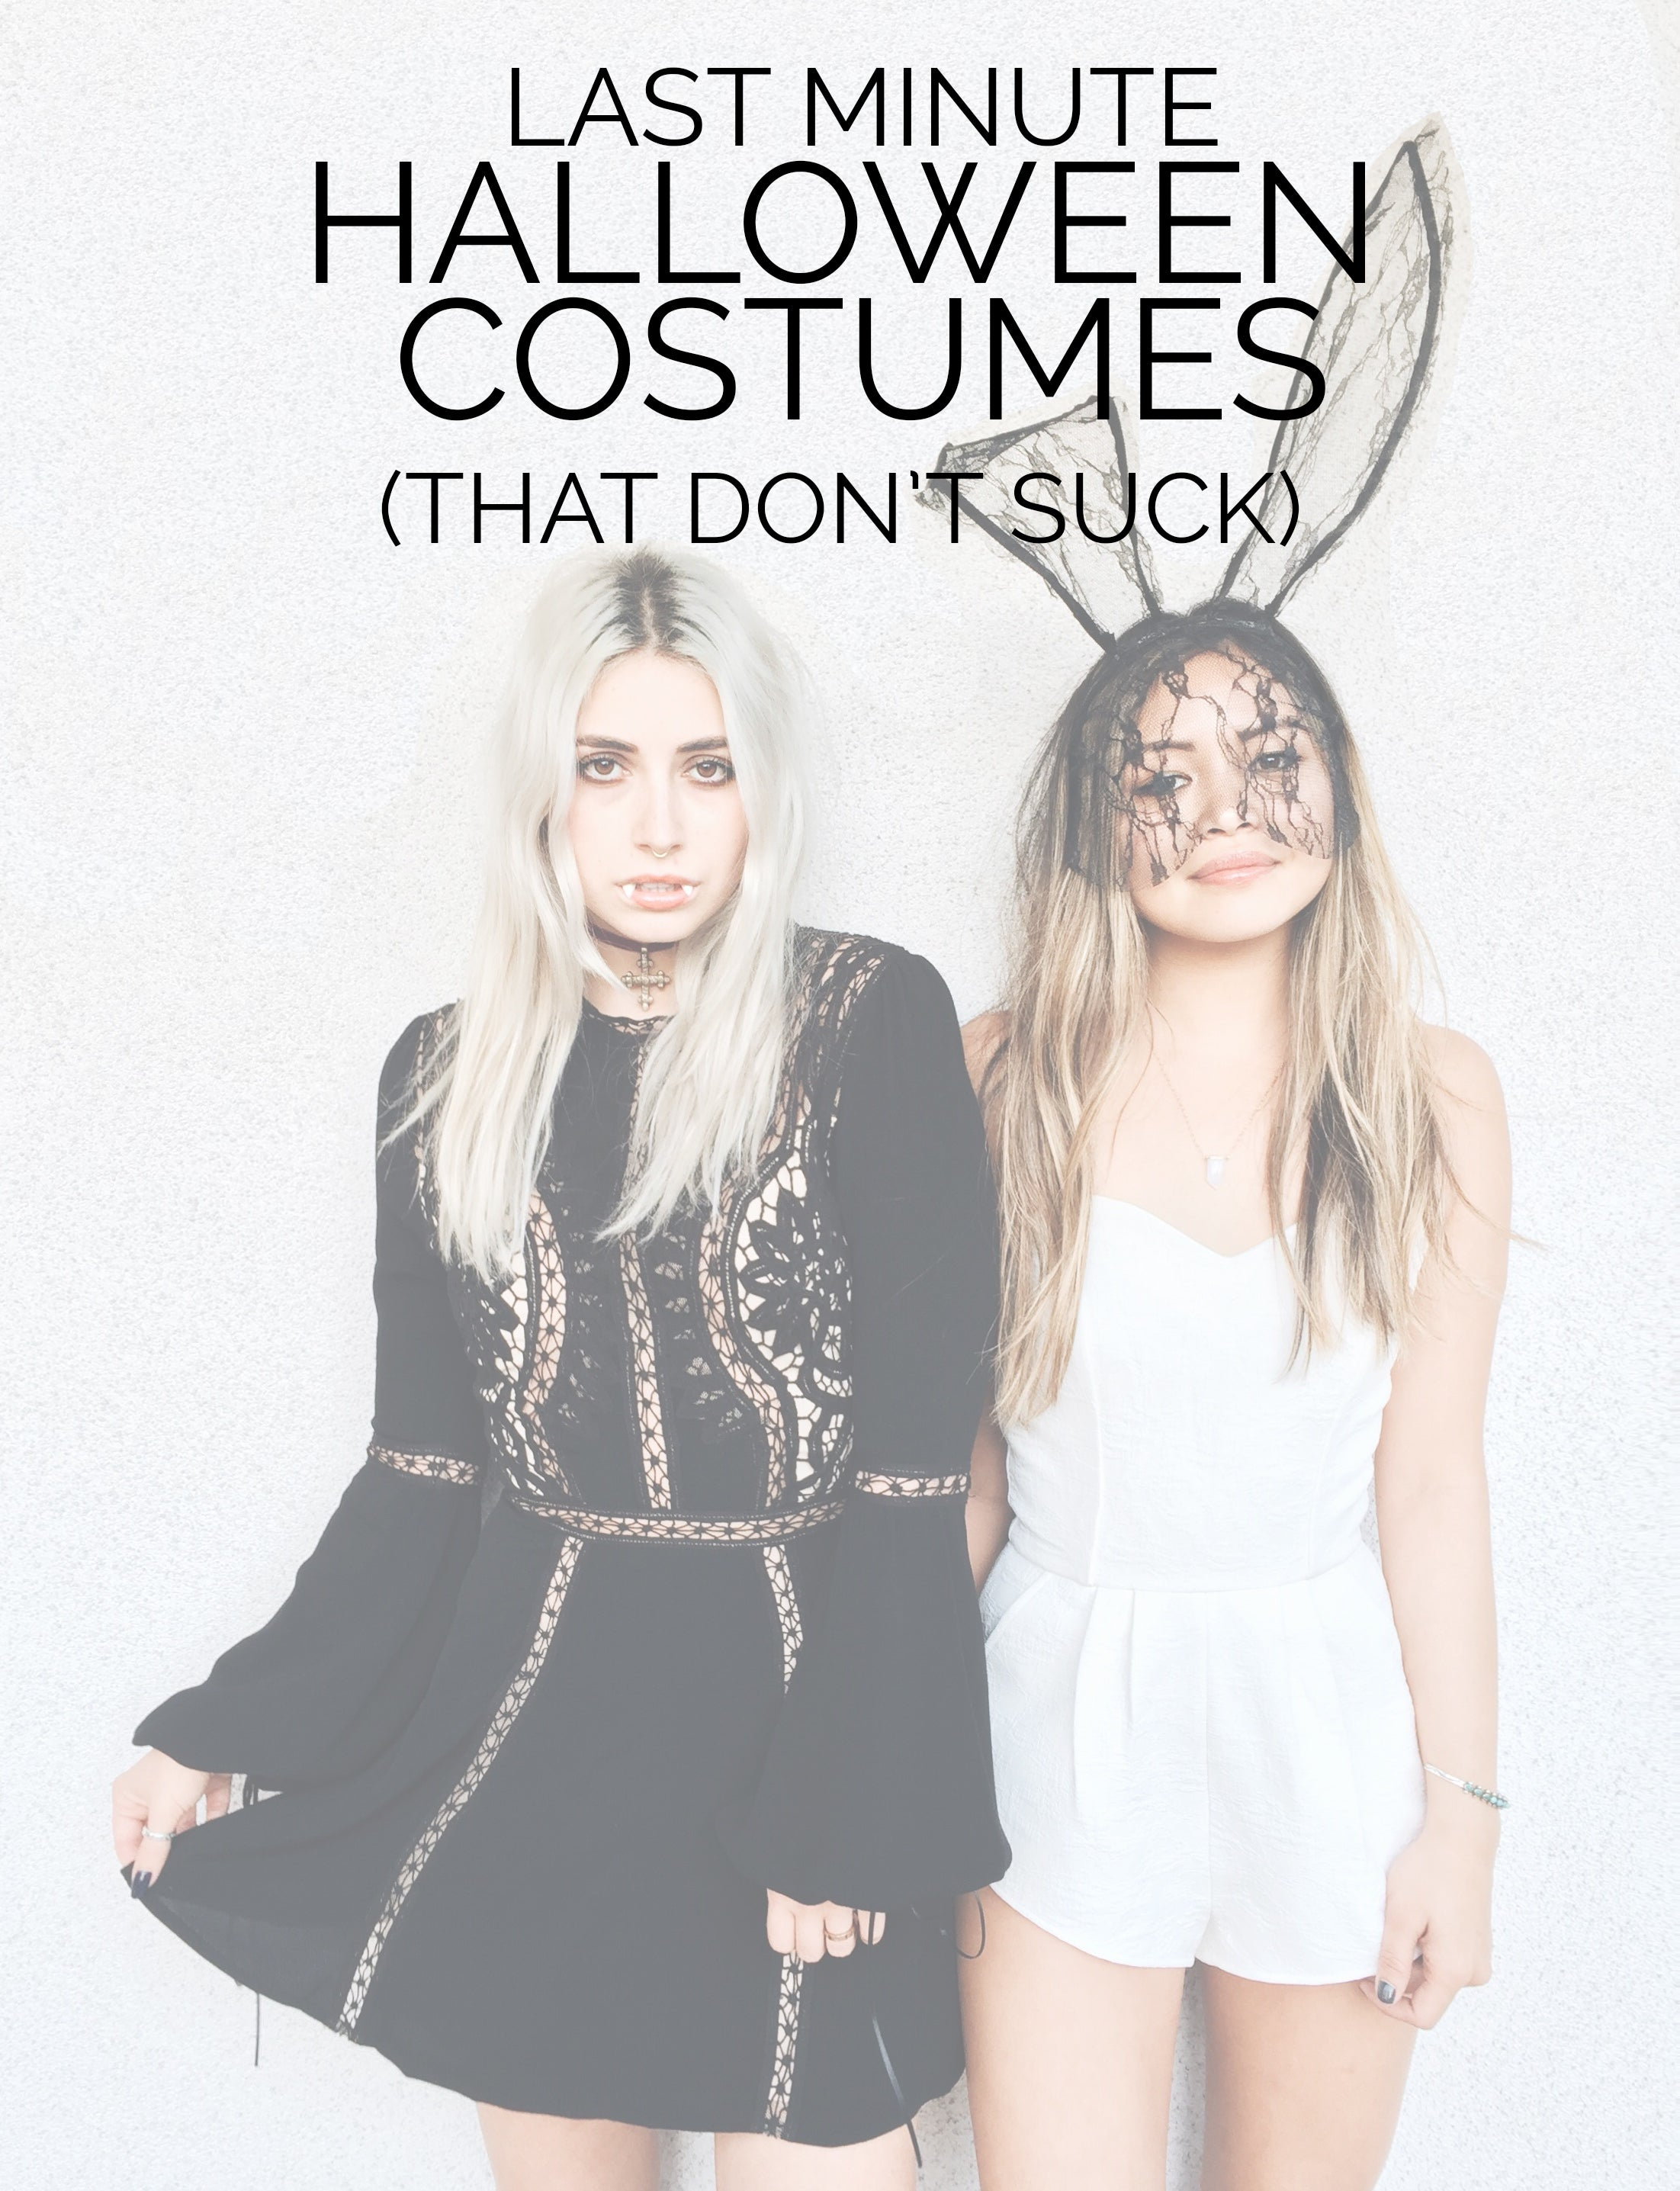 Last minute Halloween costumes that don't suck